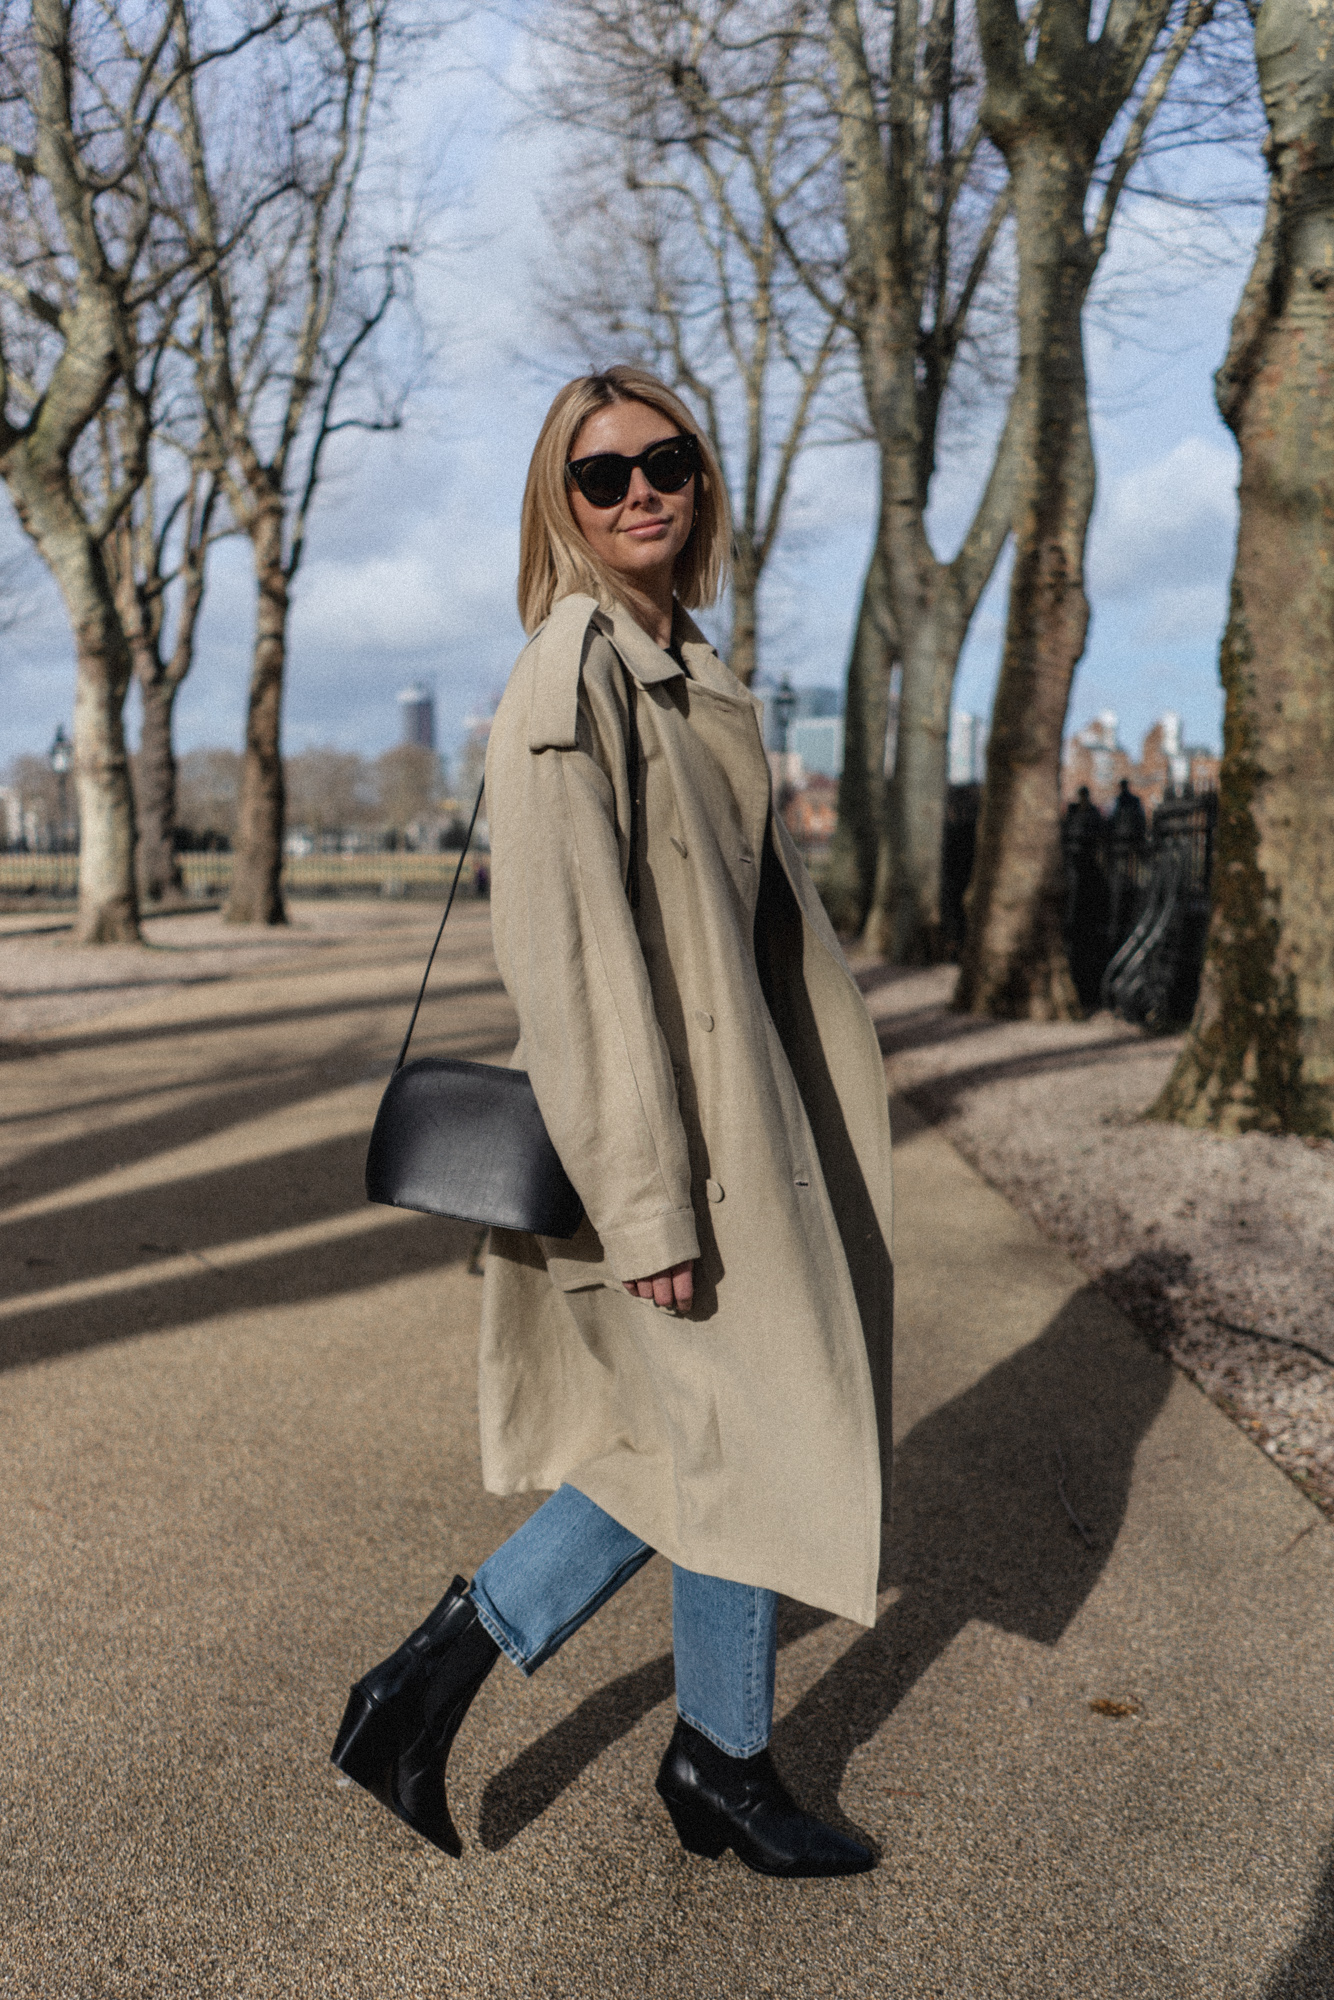 Emma Hill style. Beige linen trench coat, light wash striaght leg jeans, black western cowboy boots, black shoulder bag, Celine baby Audrey sunglasses, chic Spring outfit